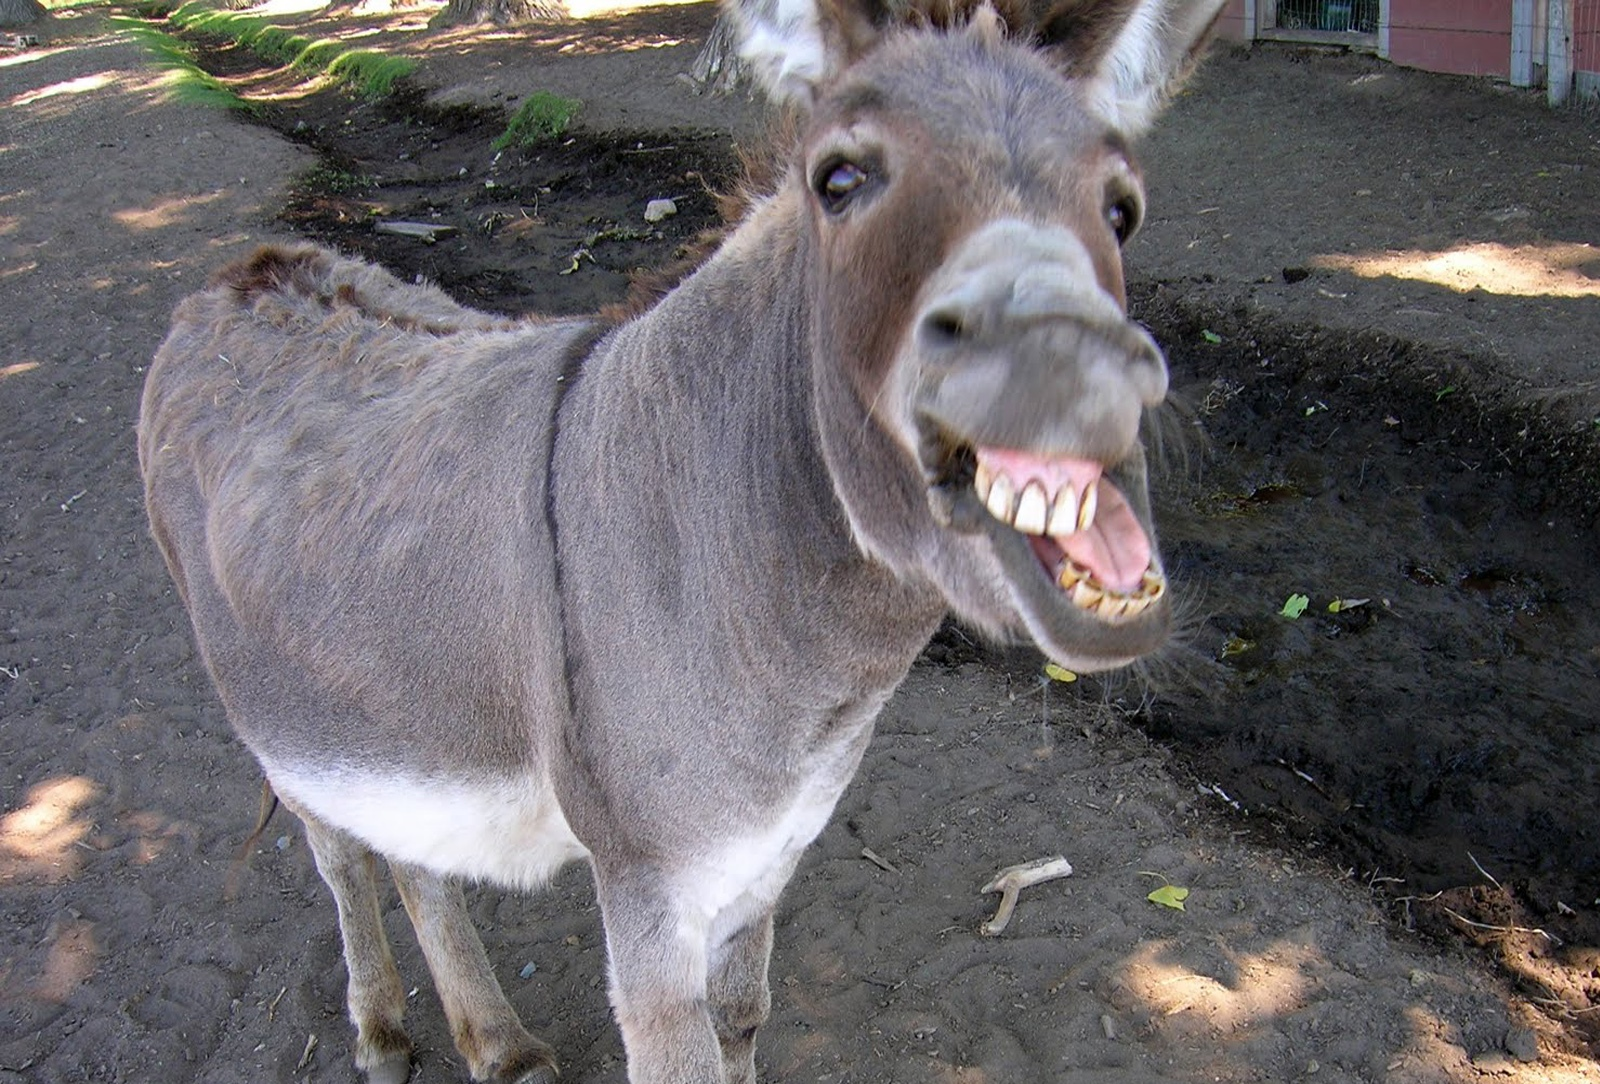 OMG: Admit Card issued to donkey in Kashmir valley!